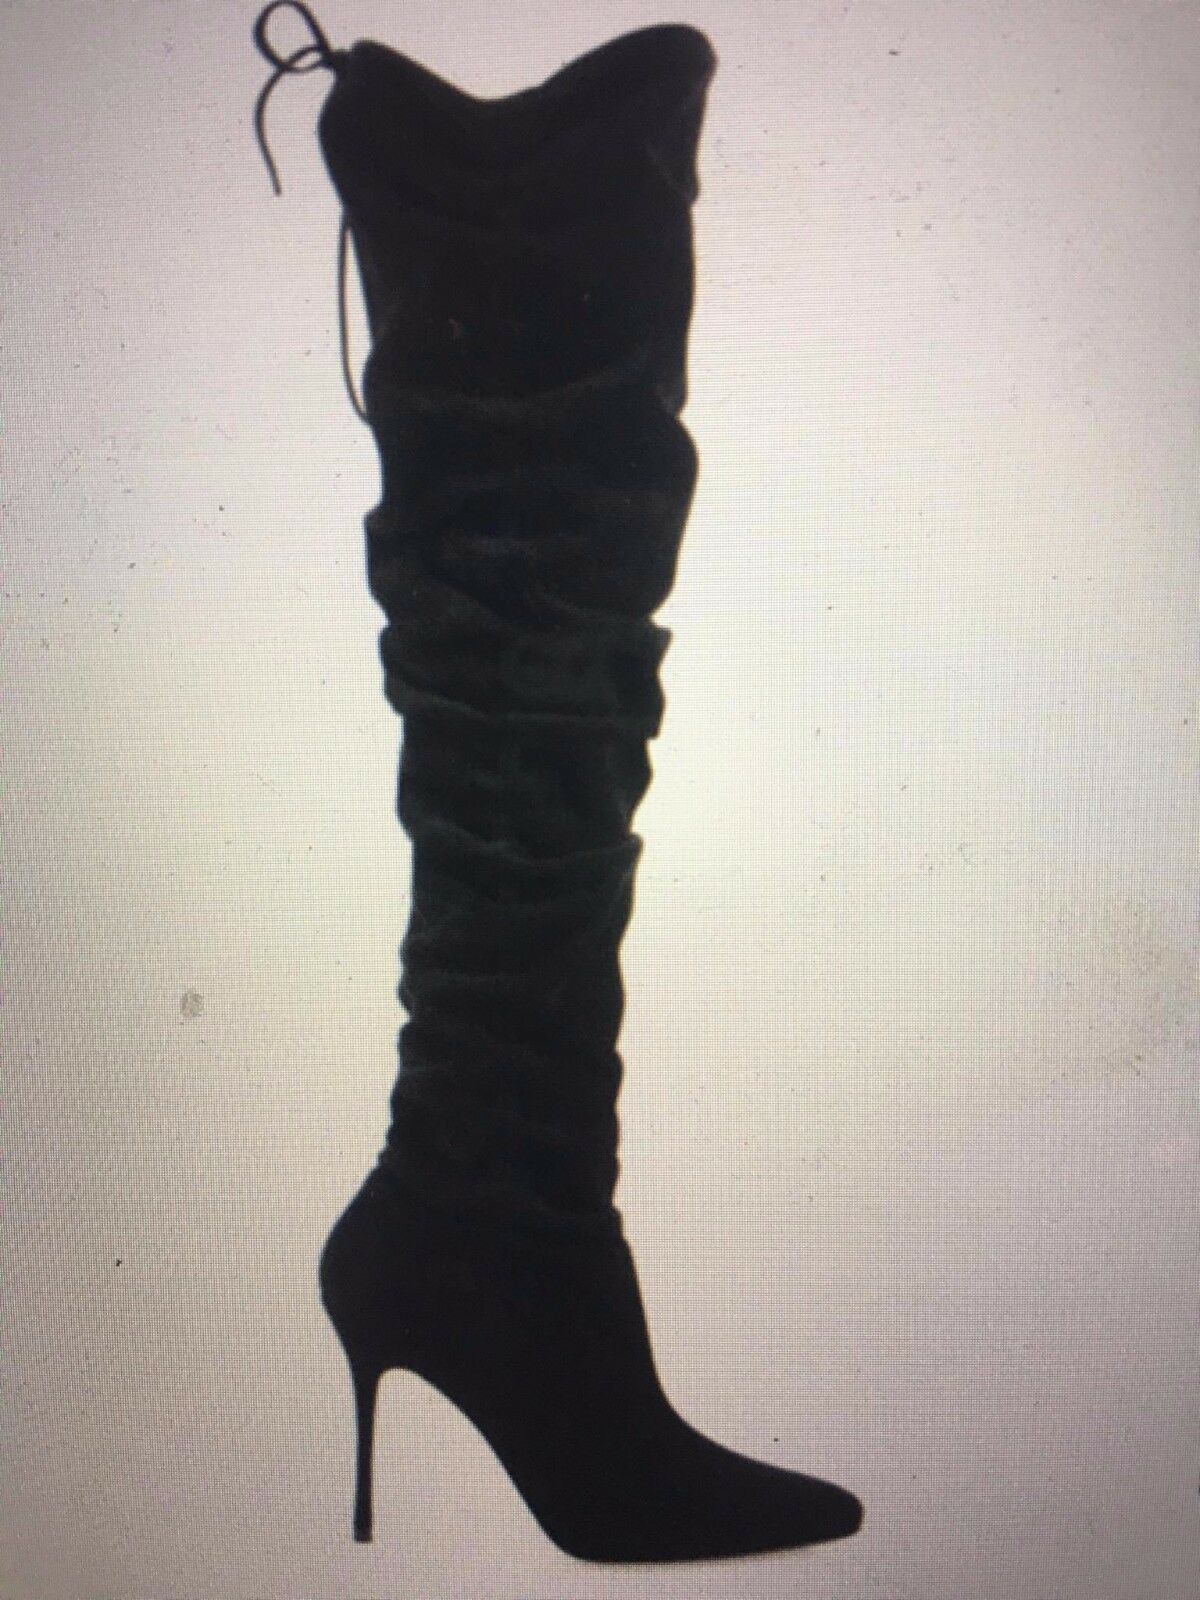 New Manolo Blahnik Gipsy Over the Knee Black Suede Boots